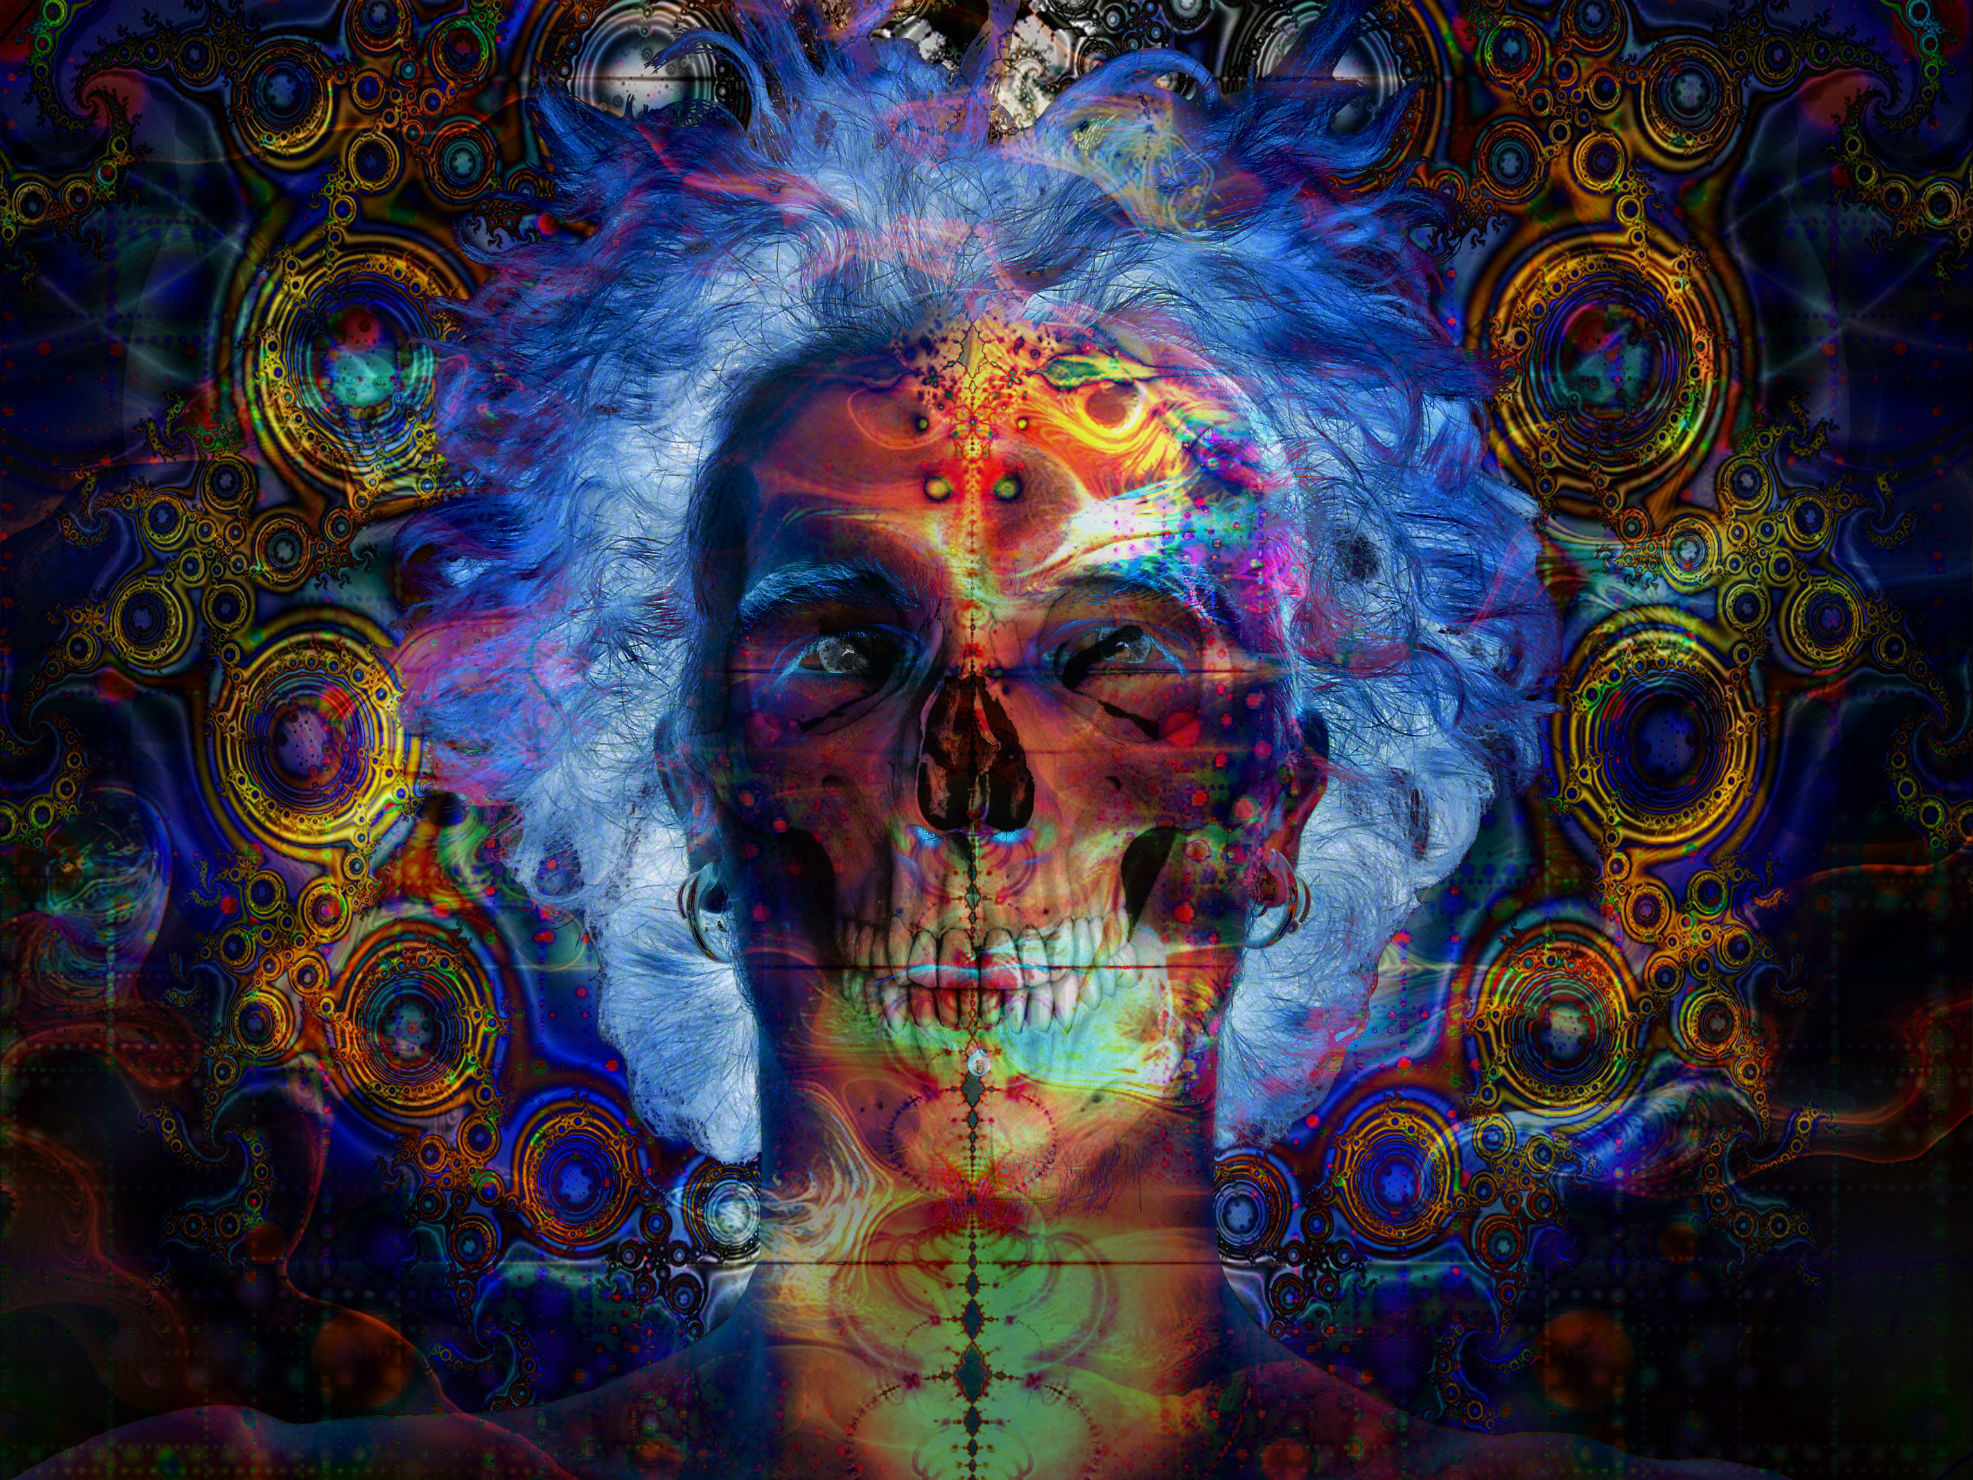 Res: 1973x1480, HD Wallpaper | Background Image ID:236140.  Artistic Psychedelic